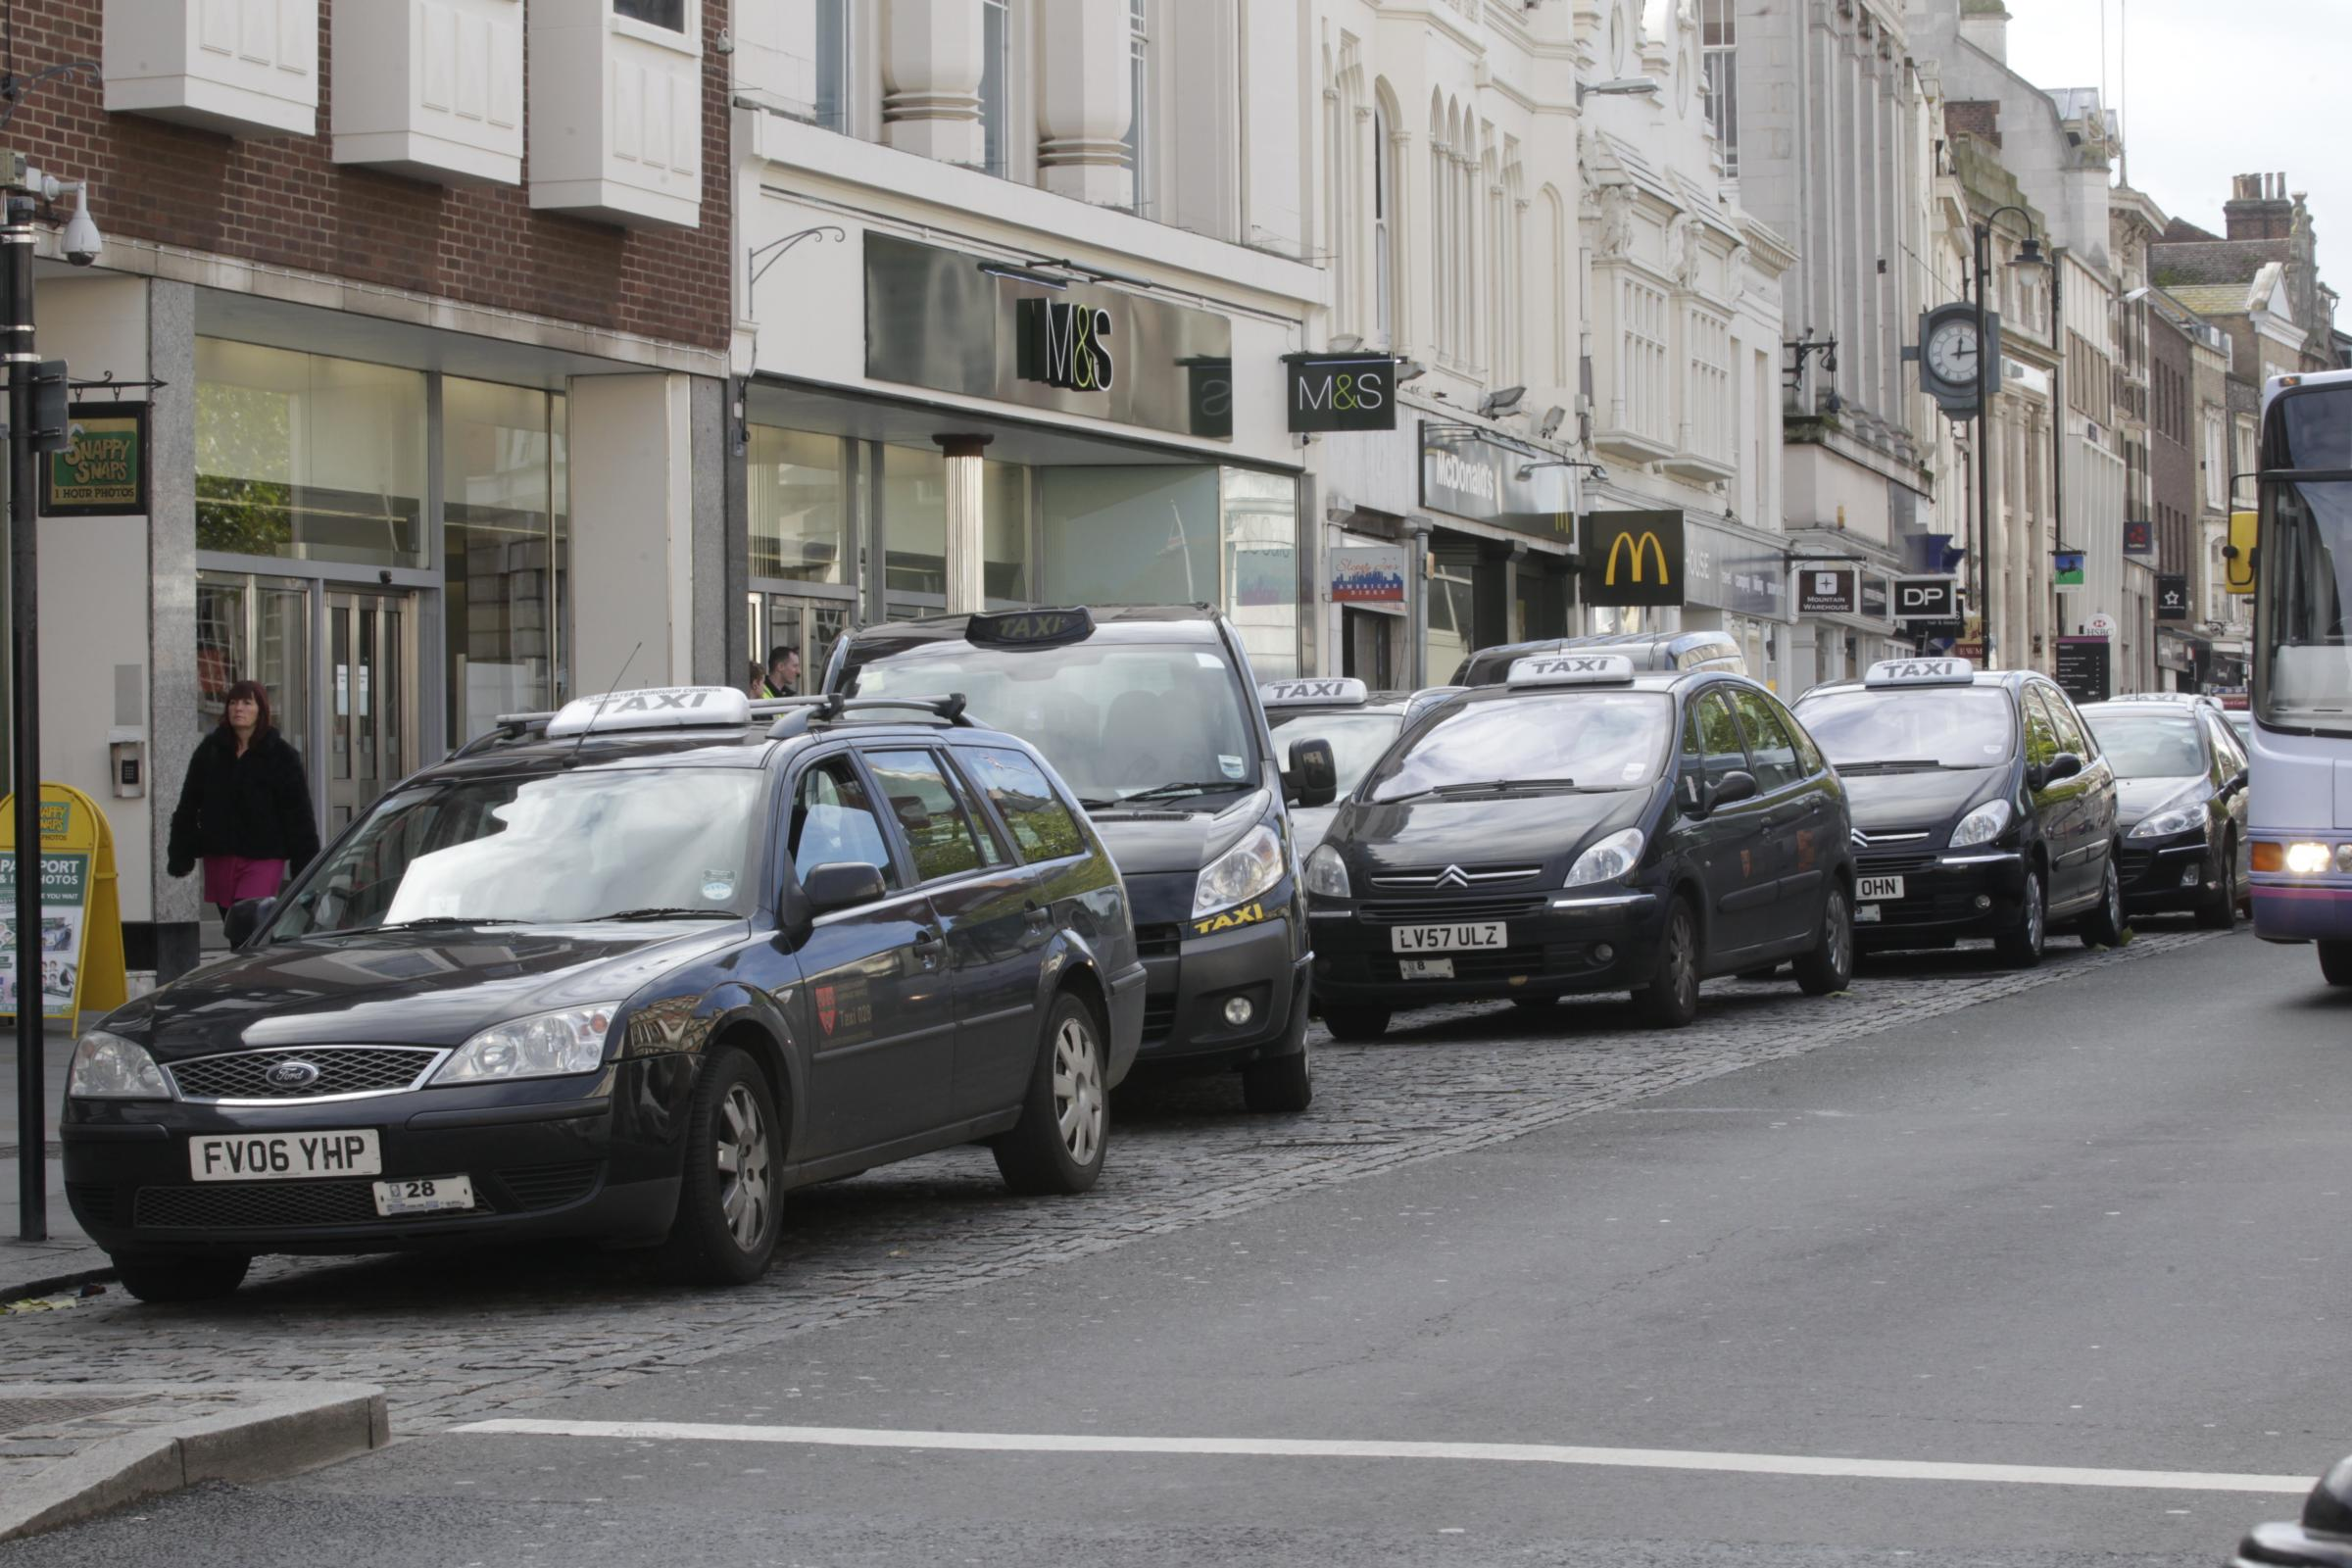 Taxis in Colchester High Street